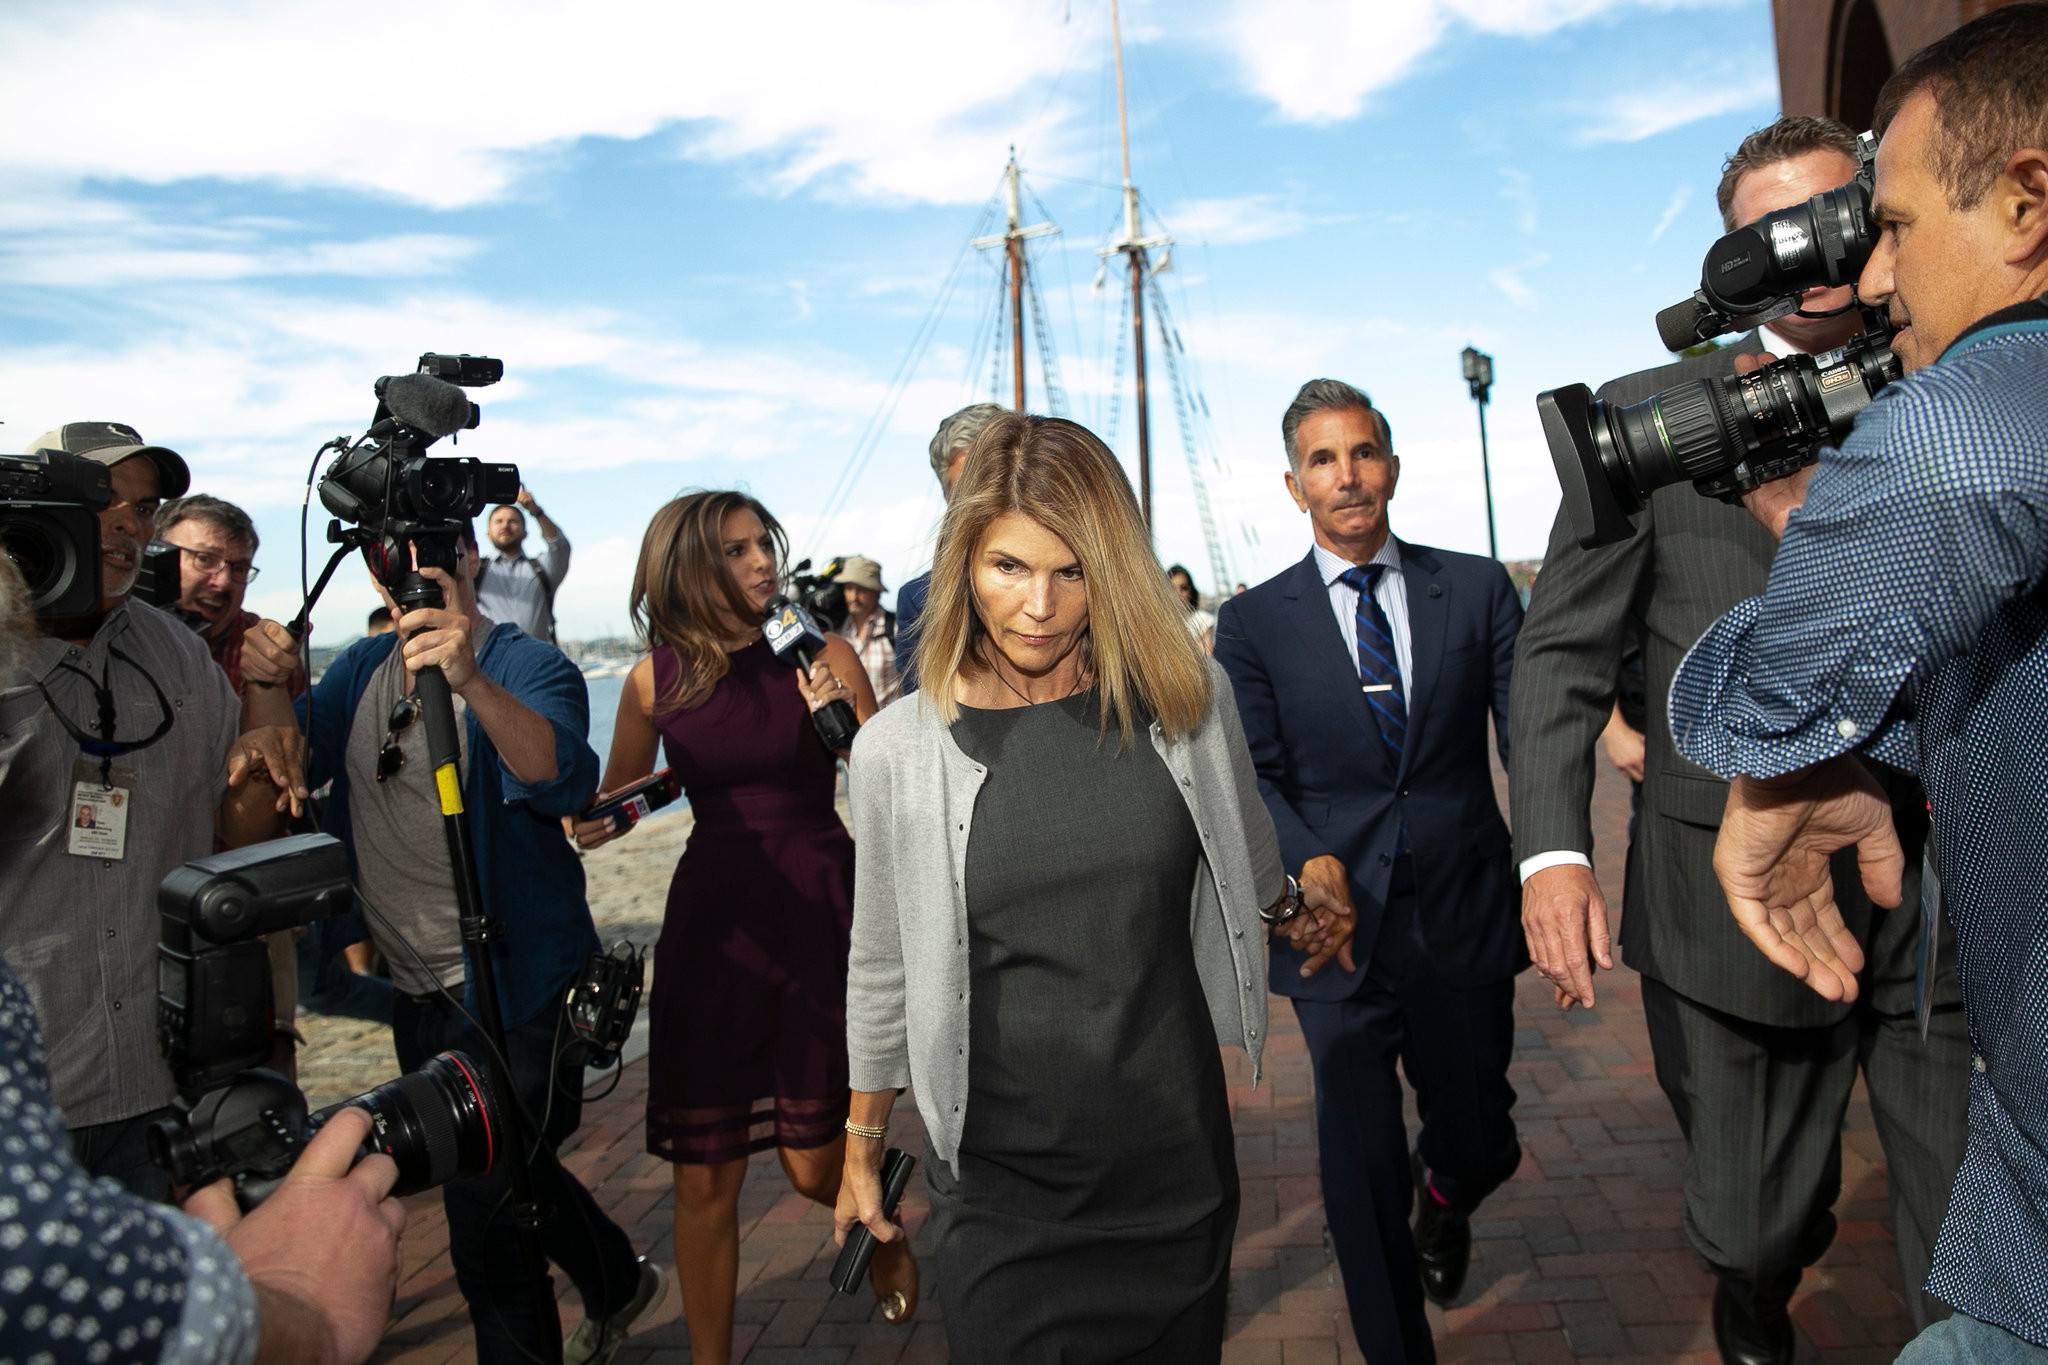 Actress Lori Loughlin reports to prison after pleading guilty in the college admissions scandal